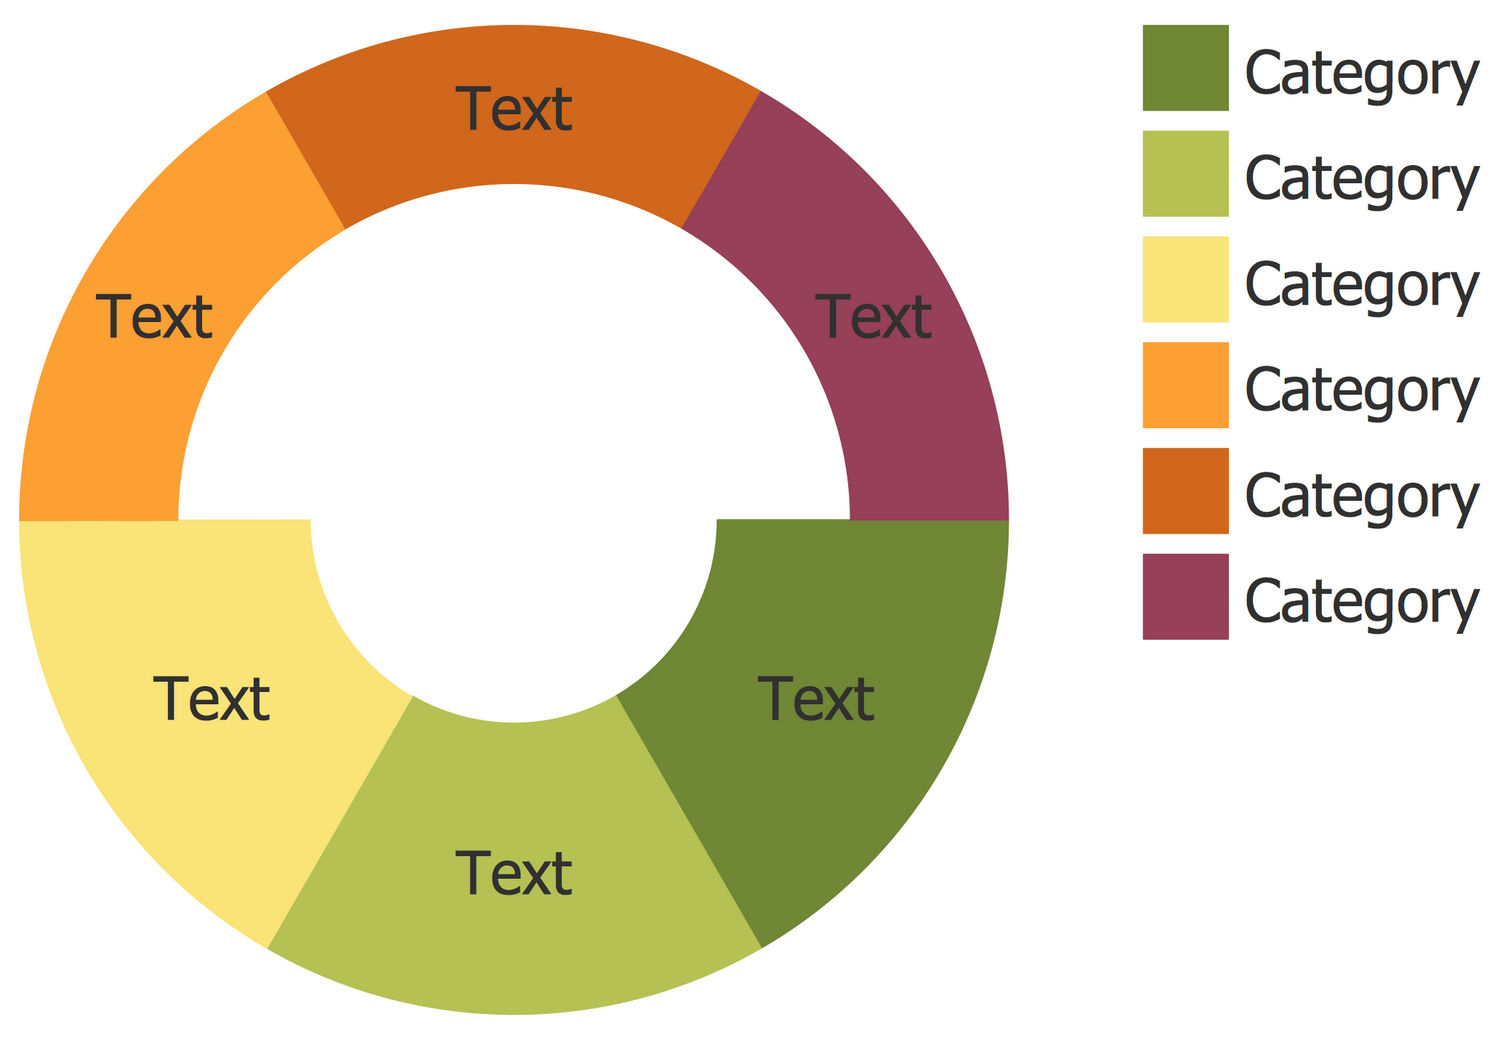 Donut chart template this example was created in conceptdraw pro donut chart template this example was created in conceptdraw pro using the basic pie charts library from the basic pie charts solution ccuart Gallery